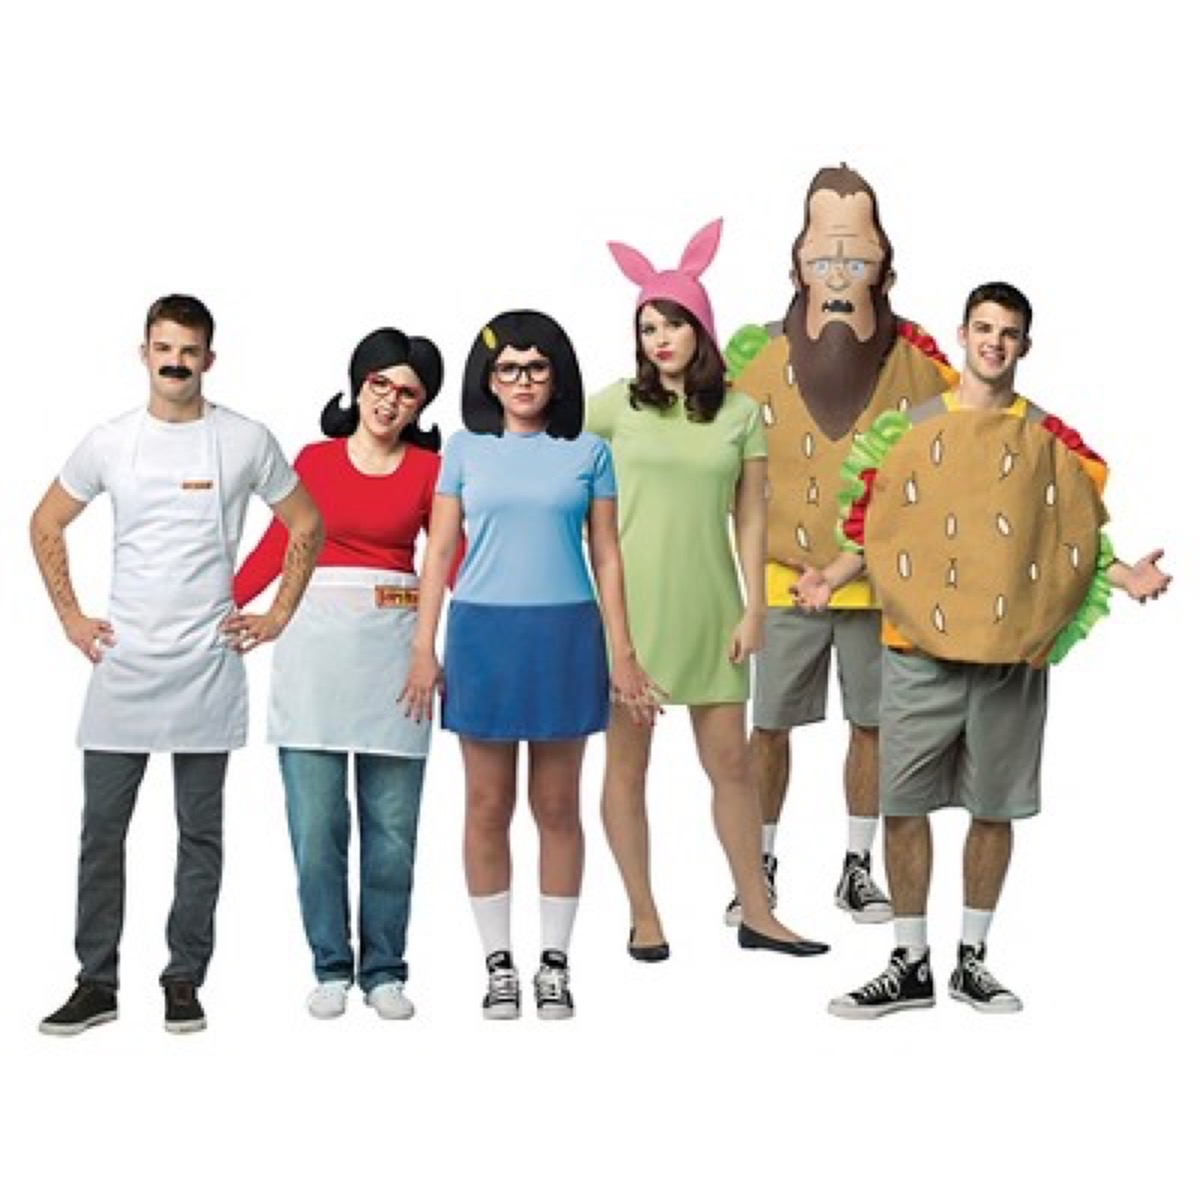 group dressed up as bob's burgers characters, family halloween costumes